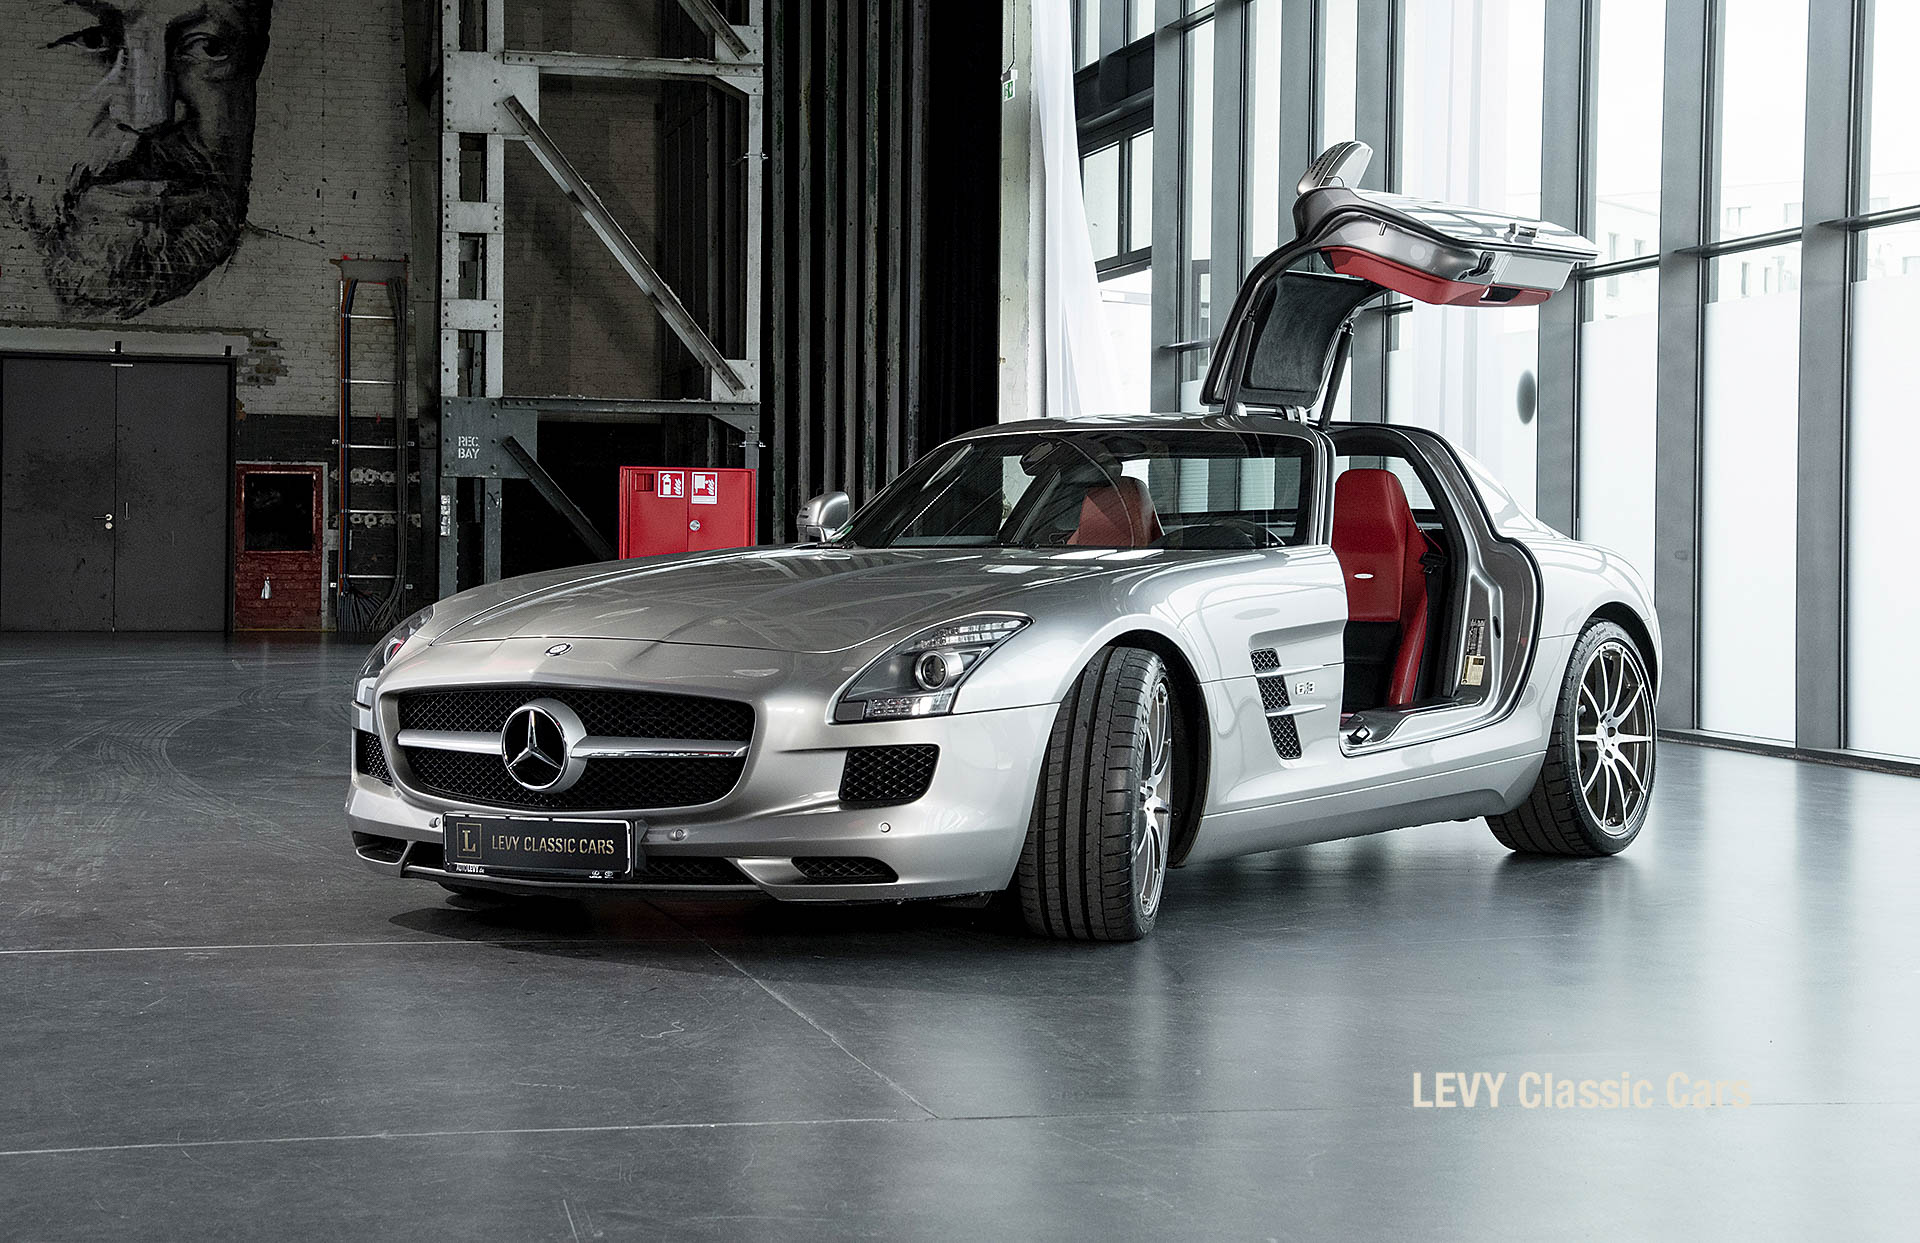 MB SLS AMG 6,3 Coupe 05633 069